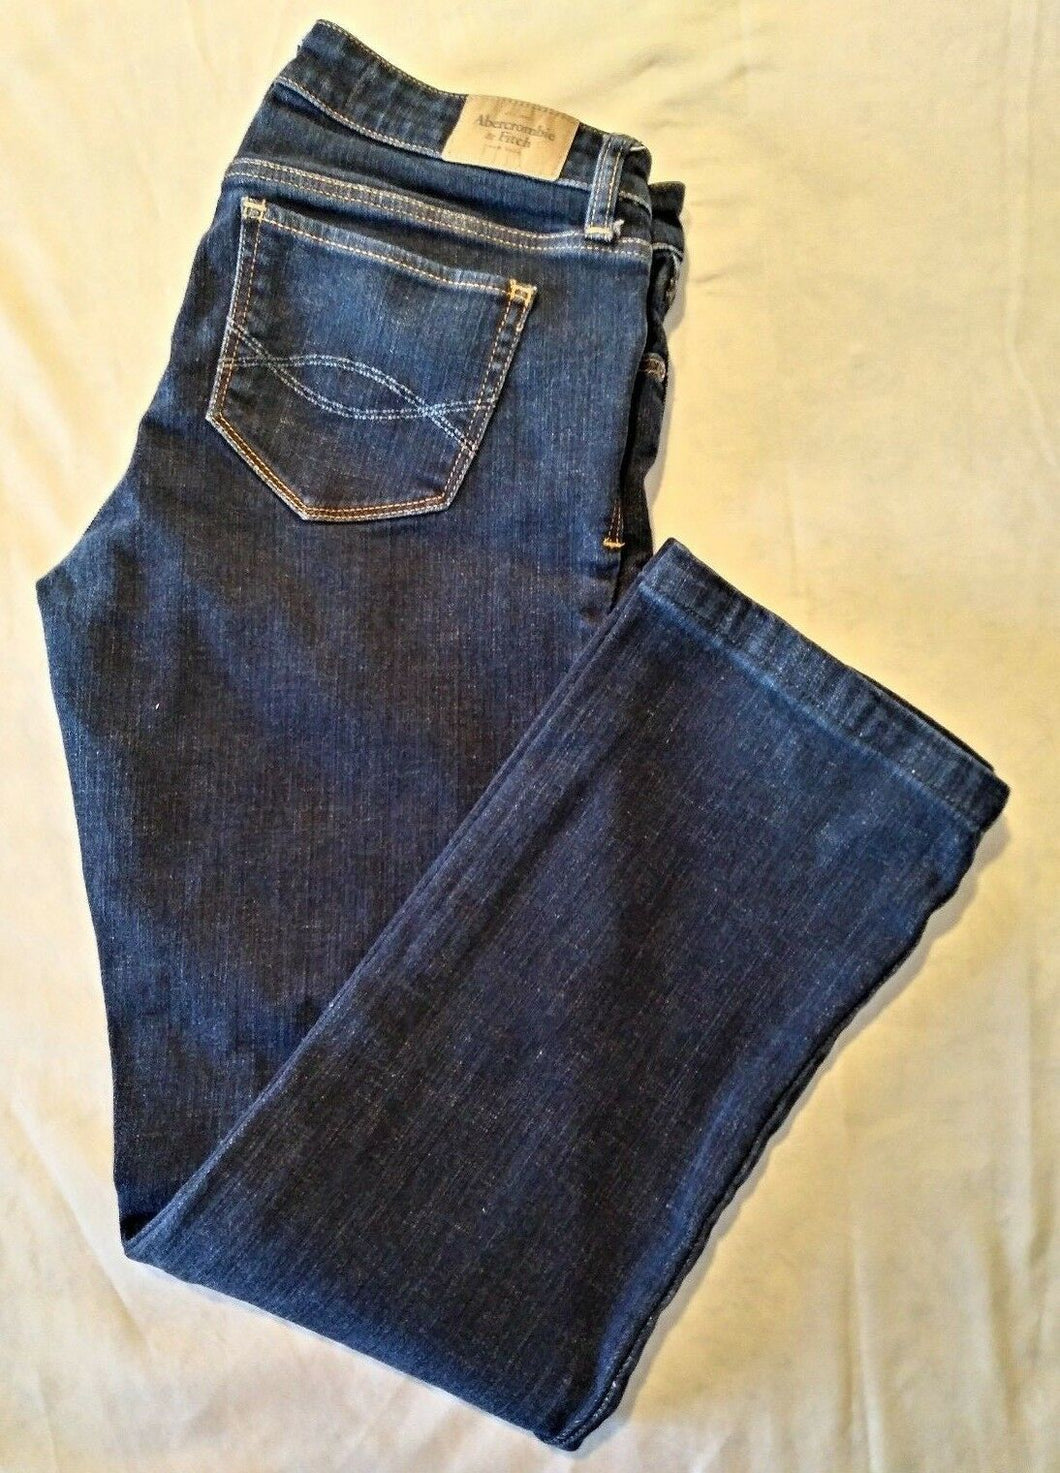 Abercrombie & Fitch Women's Straight Leg Low Rise Denim Blue Jeans Size W29 L28